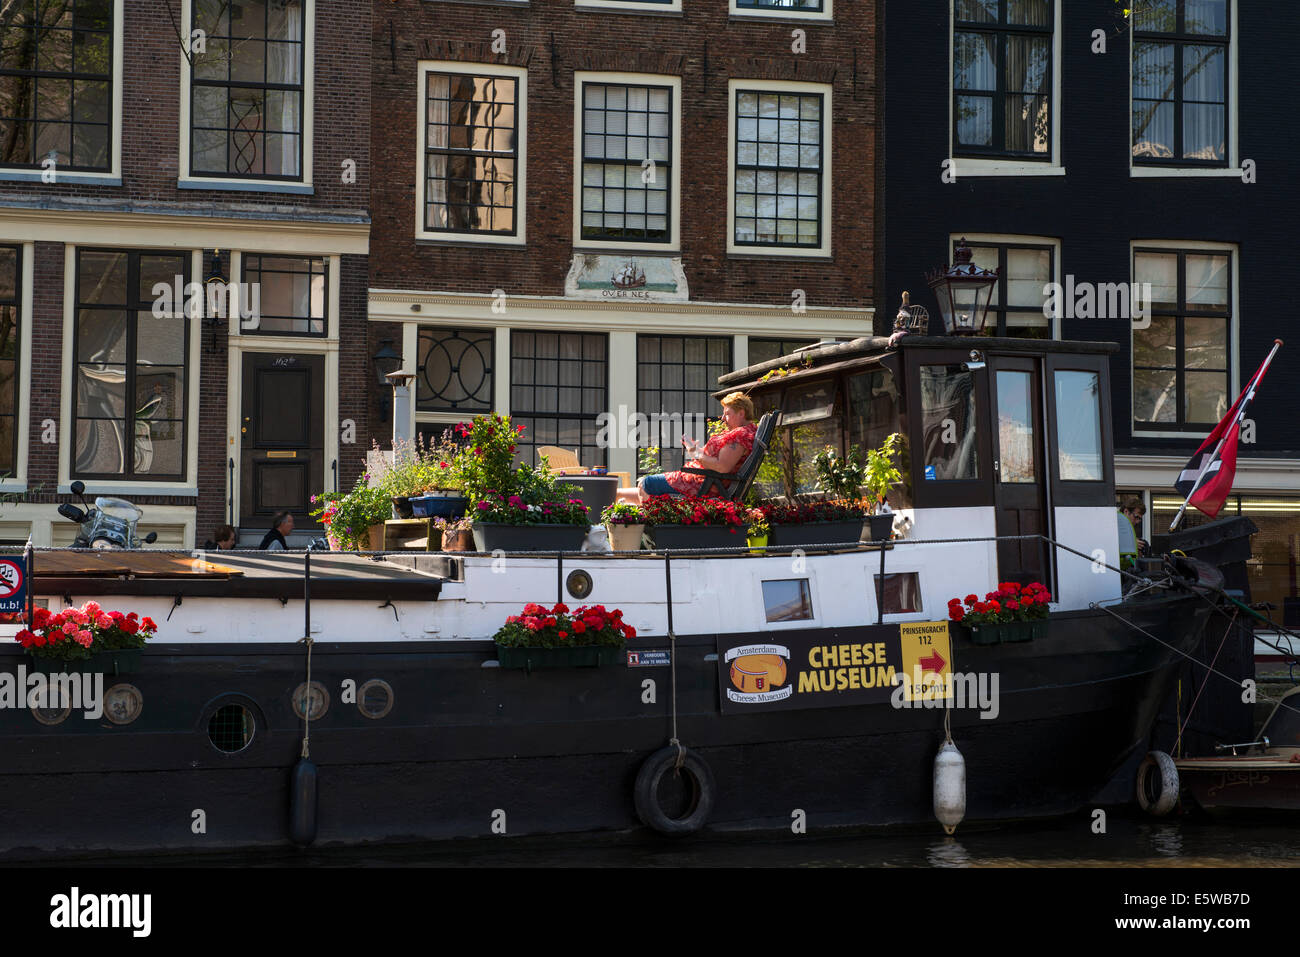 Woman on barge, Amsterdam, Holland, Netherlands, Cheese museum - Stock Image